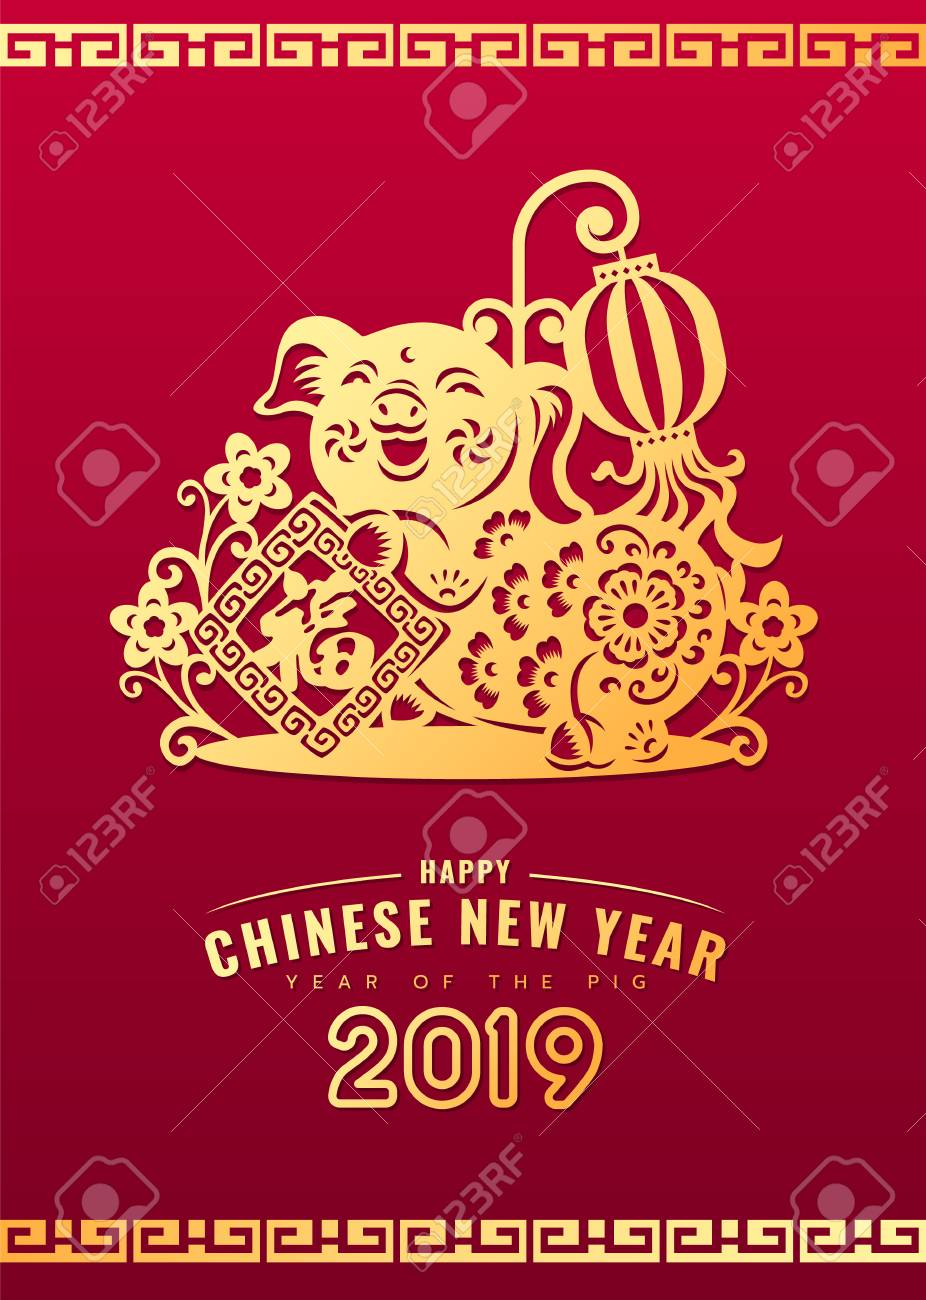 When Is Chinese New Year 2019 Happy Chinese New Year 2019 Banner Card With Gold Paper Cut Pig